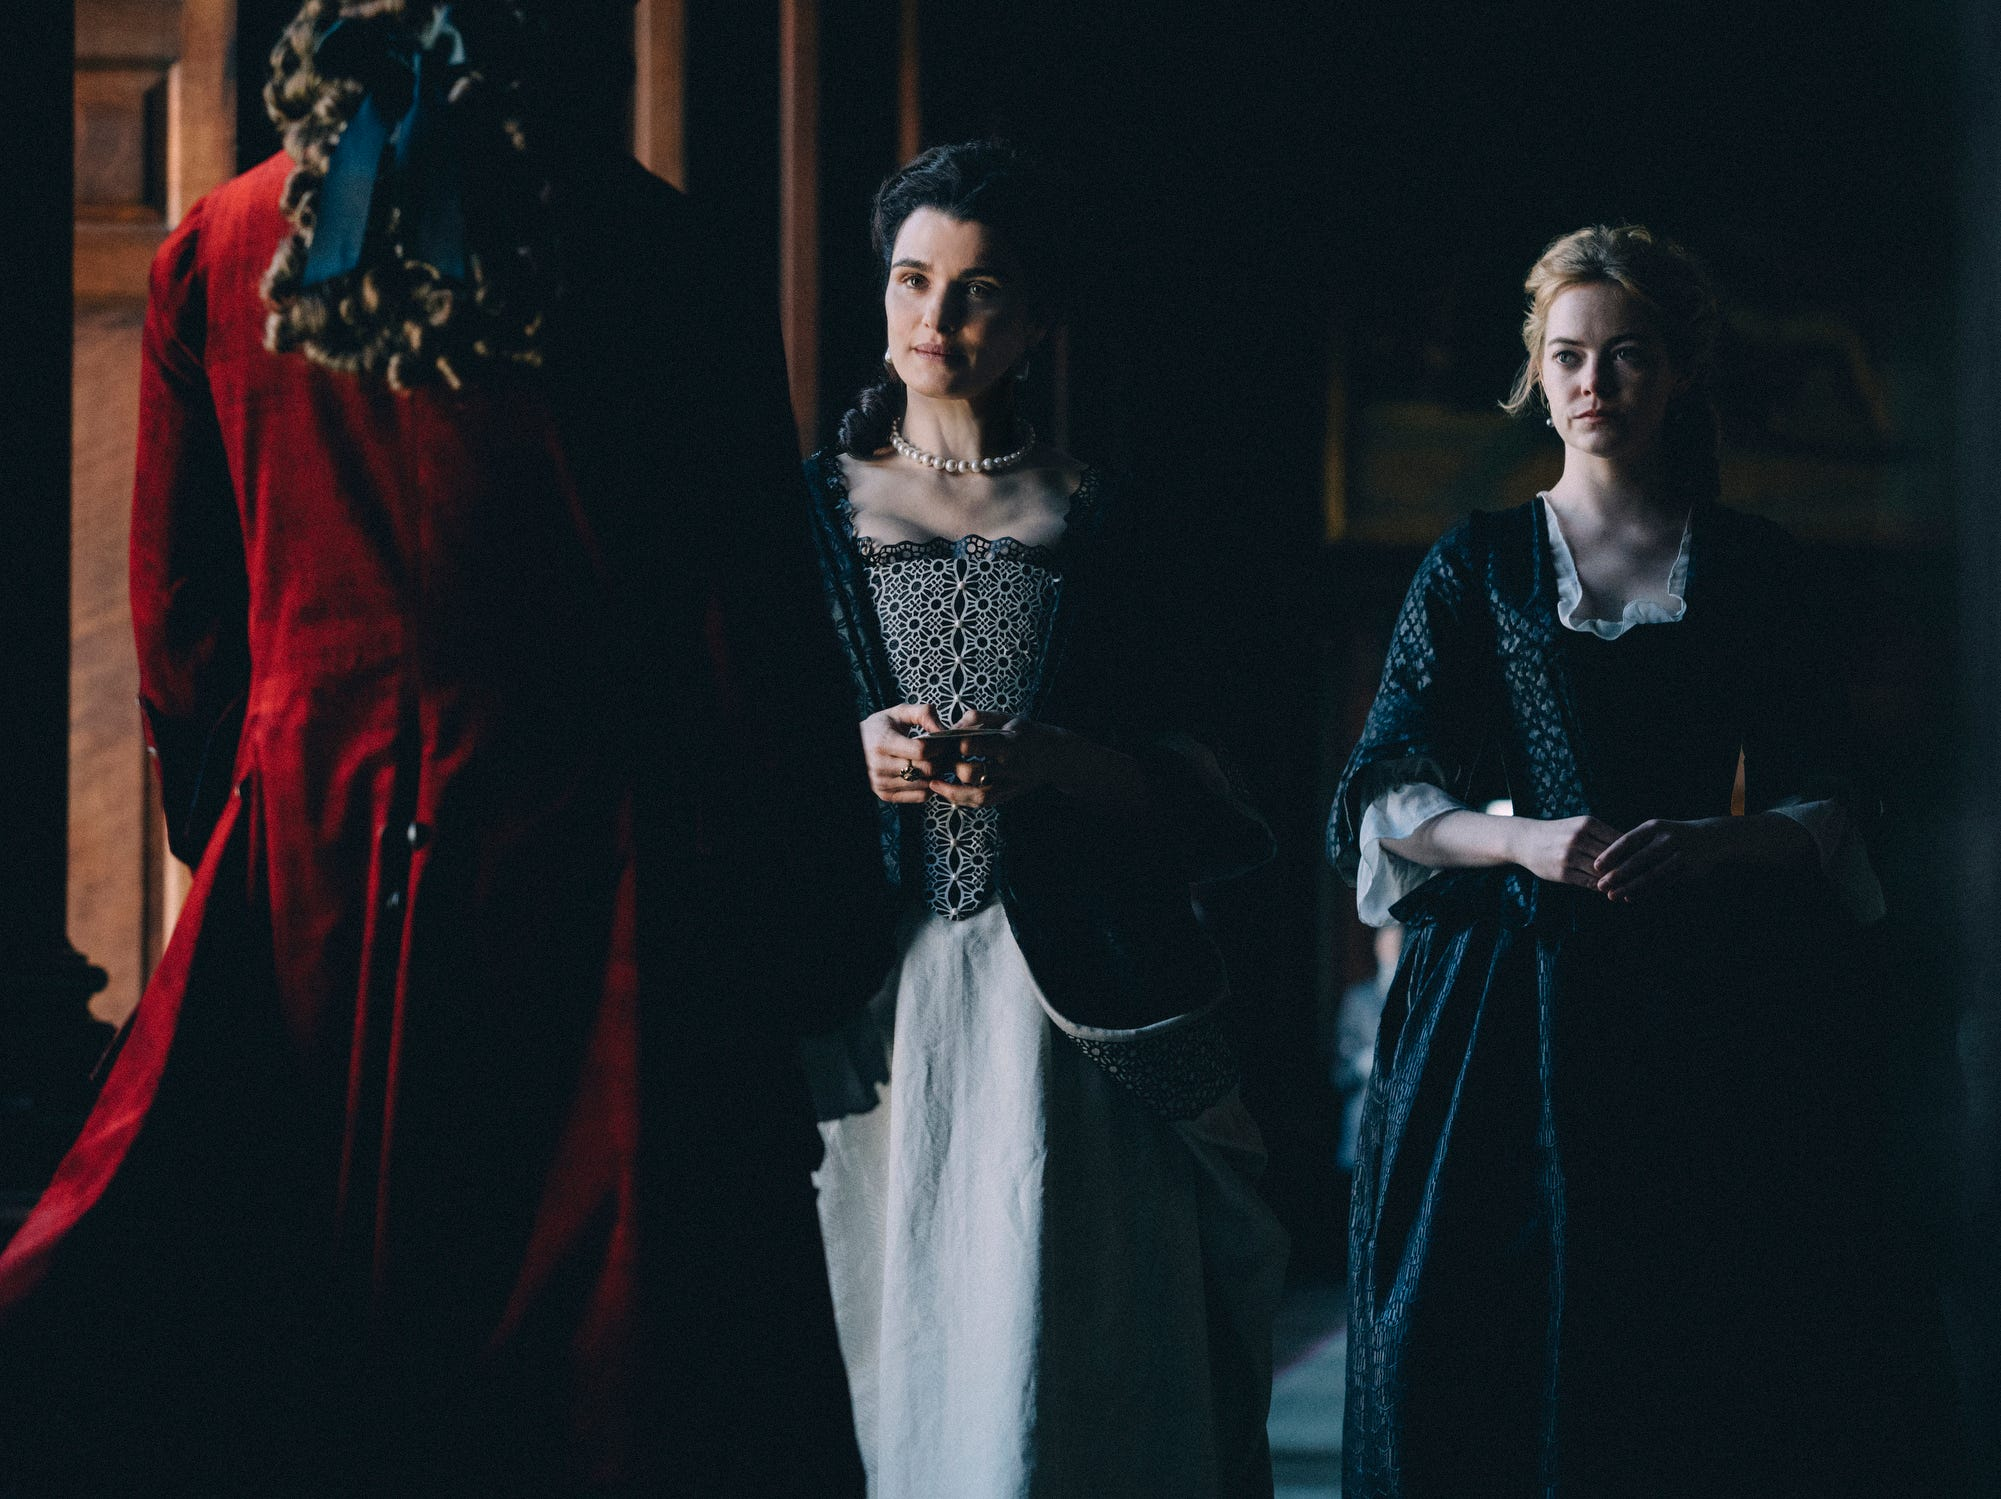 """The Favourite"" (R): Two ladies-in-waiting (Emma Stone and Rachel Weisz) attempt to yield power and privilege from Queen Anne (Olivia Colman, in an Oscar-worthy portrayal) in this humorous glimpse at 18th century English aristocracy. 